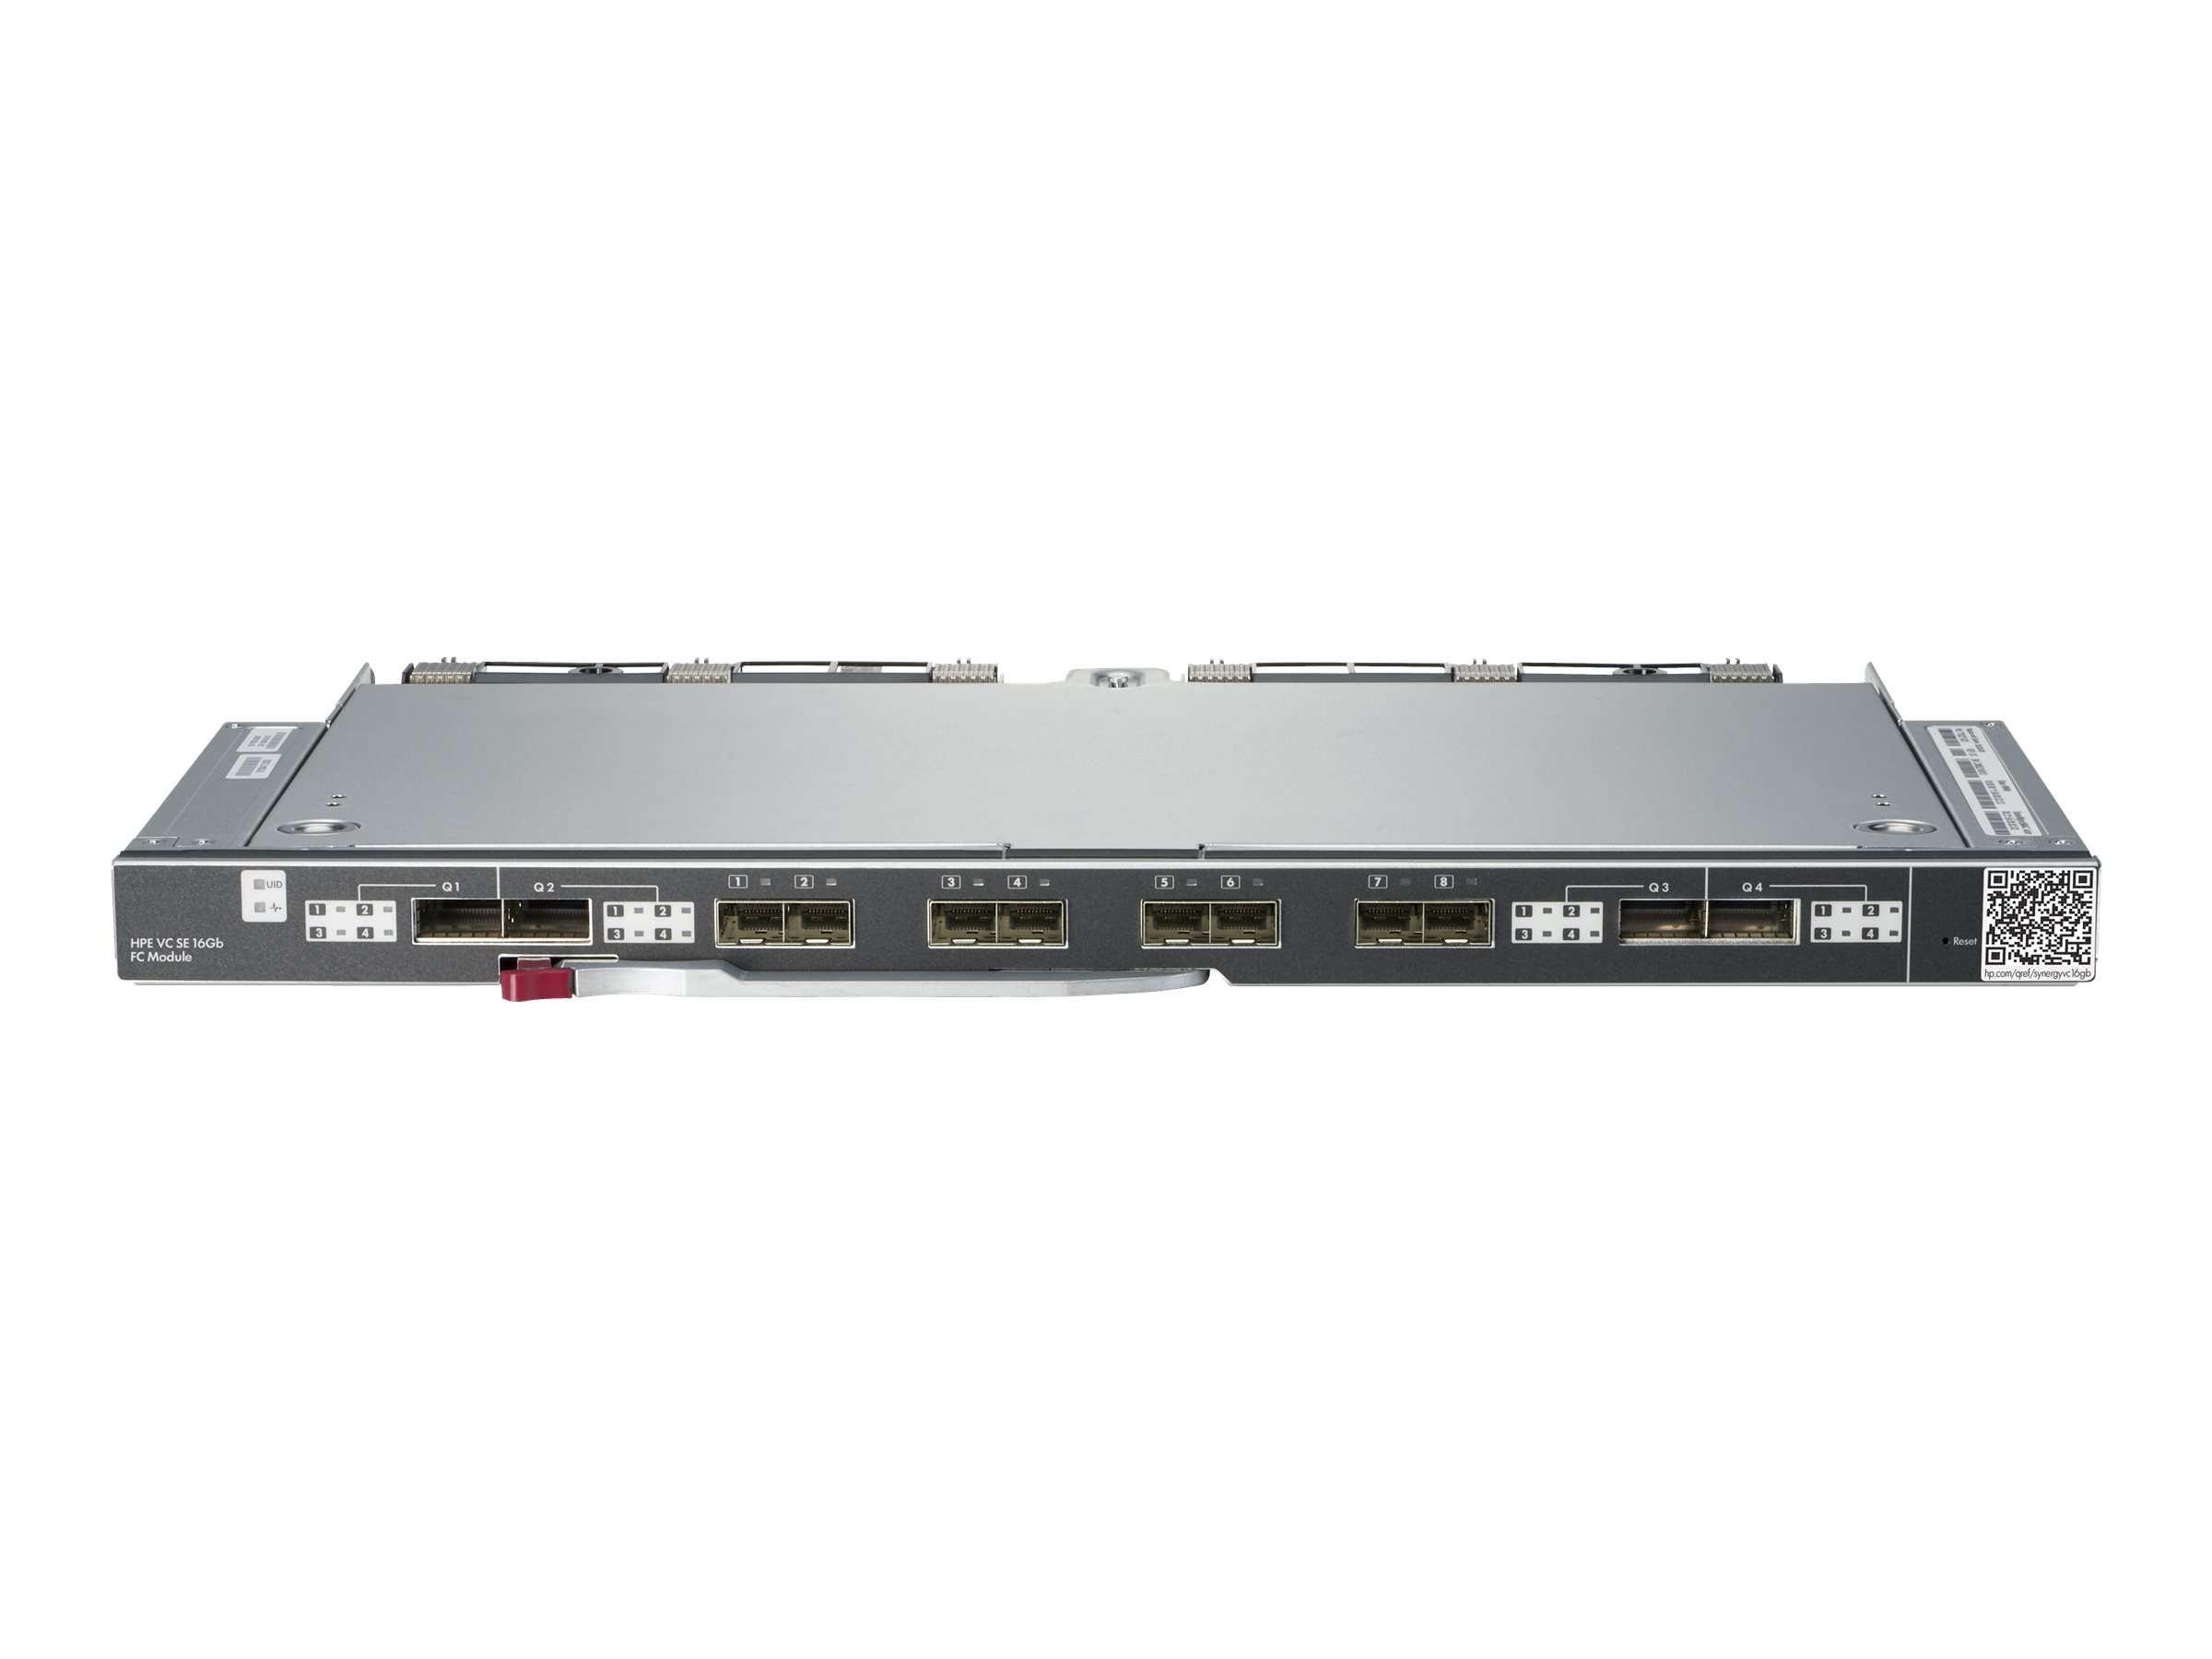 HPE Virtual Connect SE 16Gb Module - switch - 24 ports - managed - plug-in module